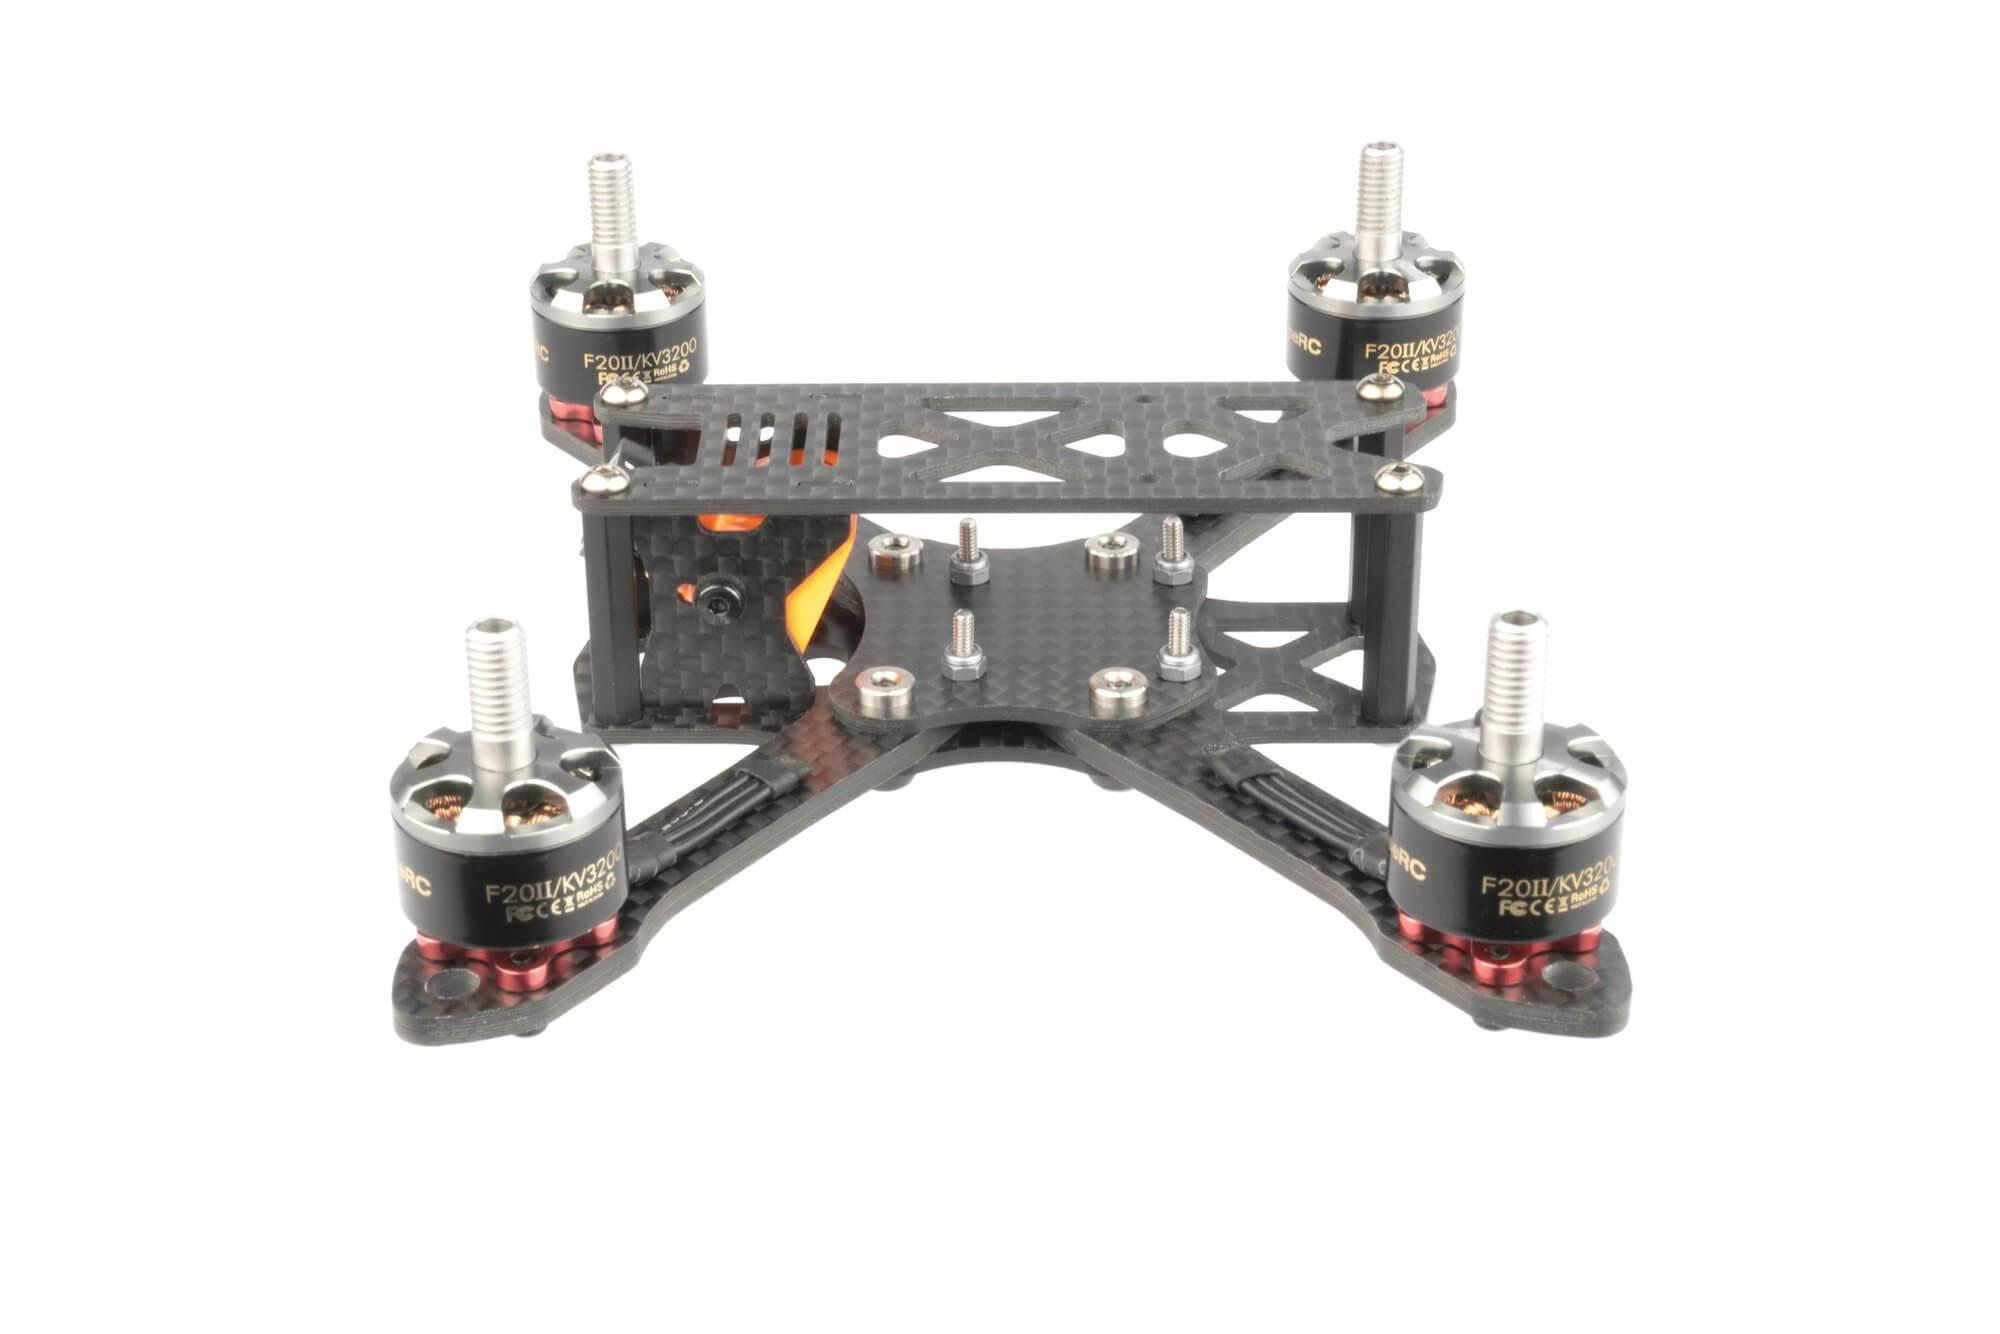 impulserc mini alien 3 inch frame